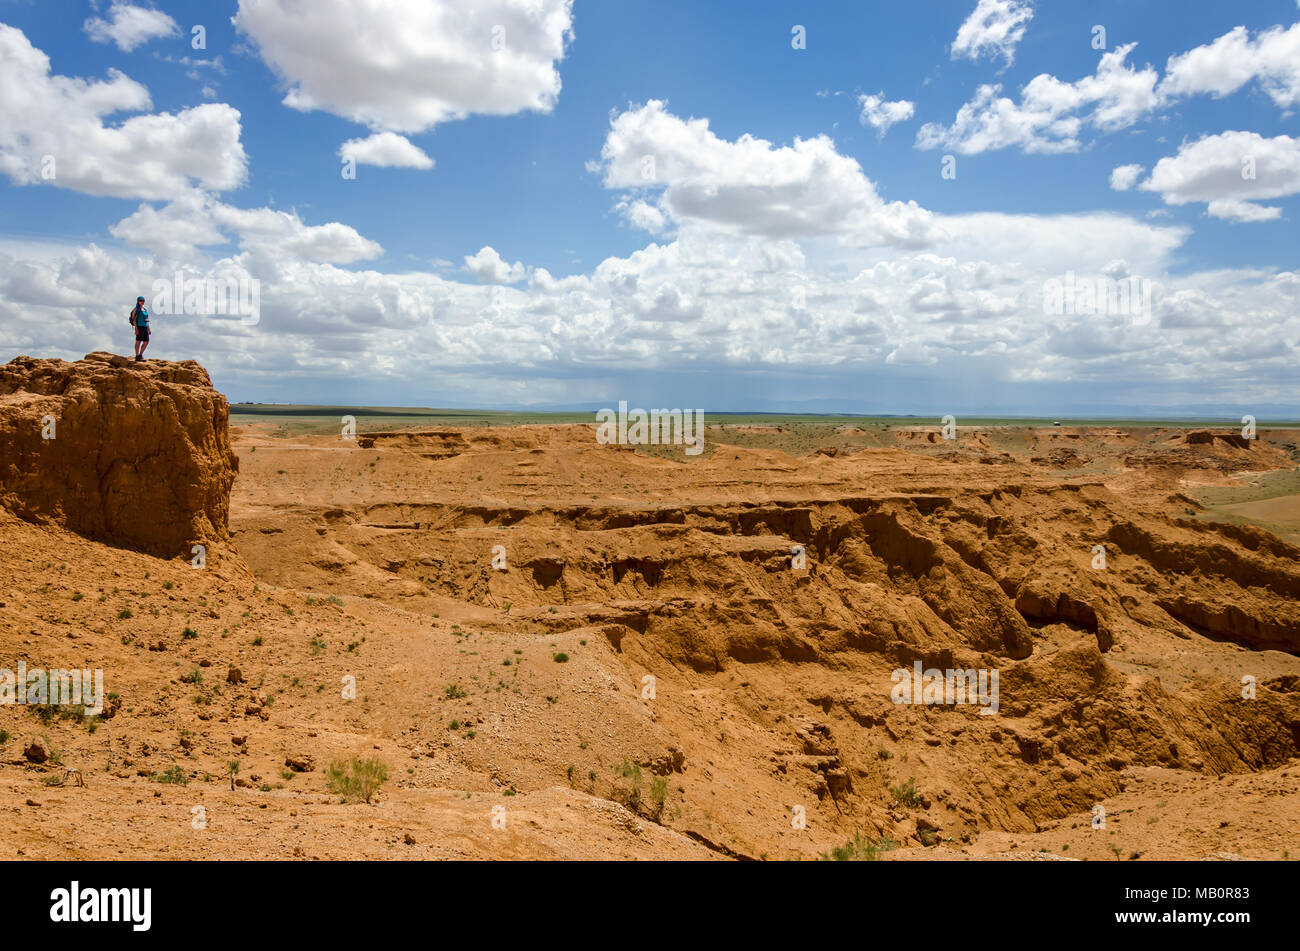 Flaming Cliffs, Gobi Desert Mongolia - Stock Image